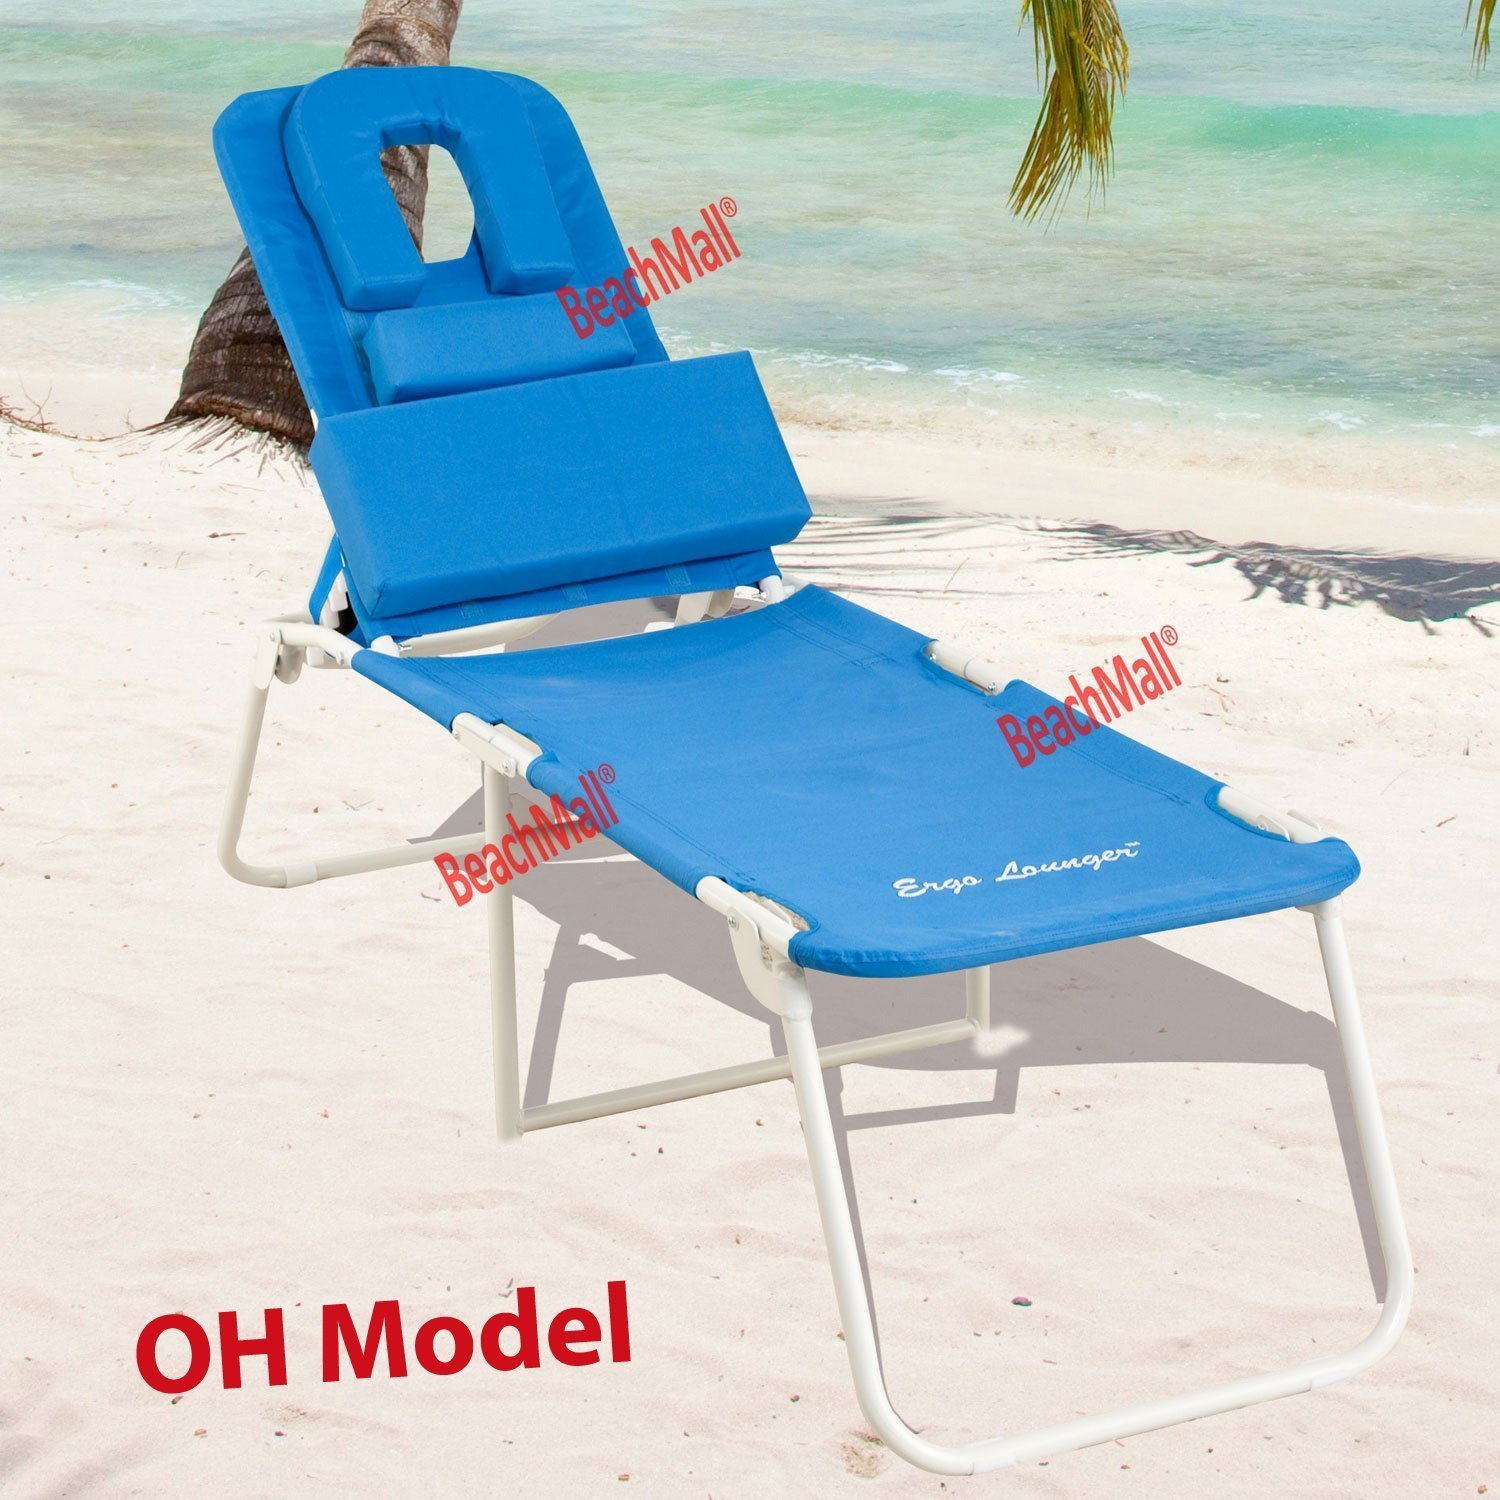 Amazon Ergo Lounger OH Therapeutic Face Down Lounger